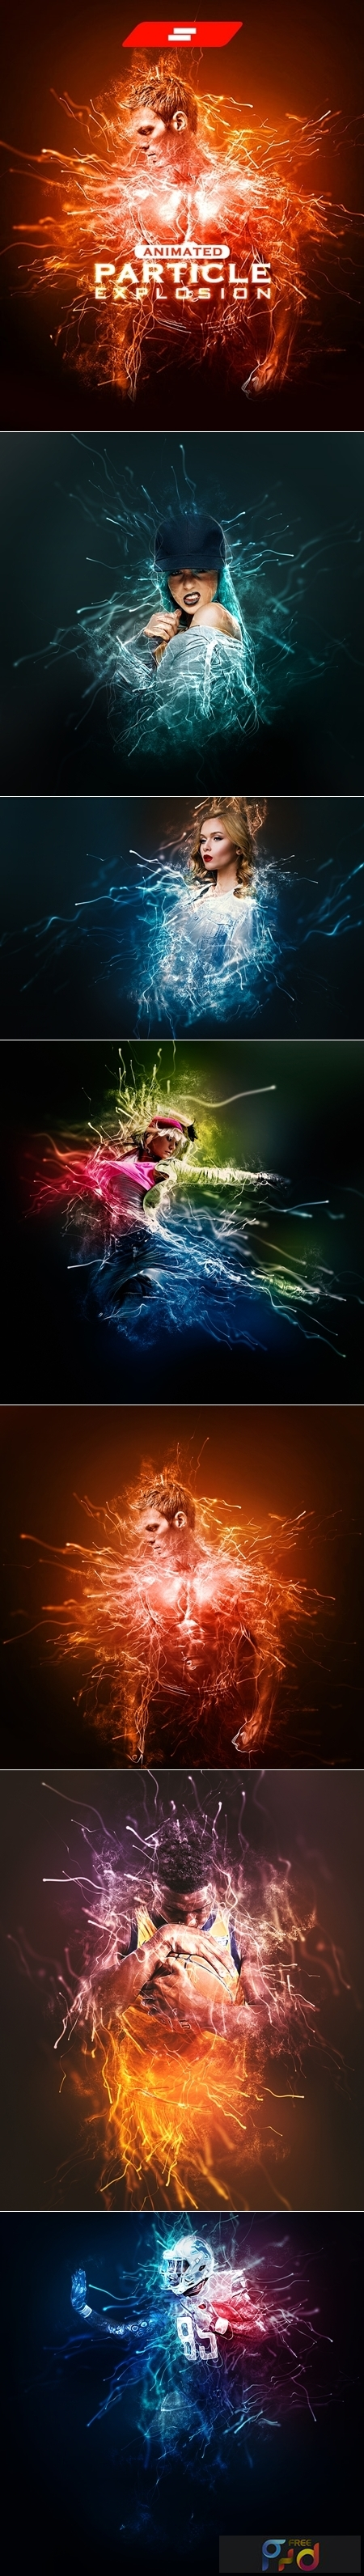 Gif Animated Particle Explosion Photoshop Action 22787201 1